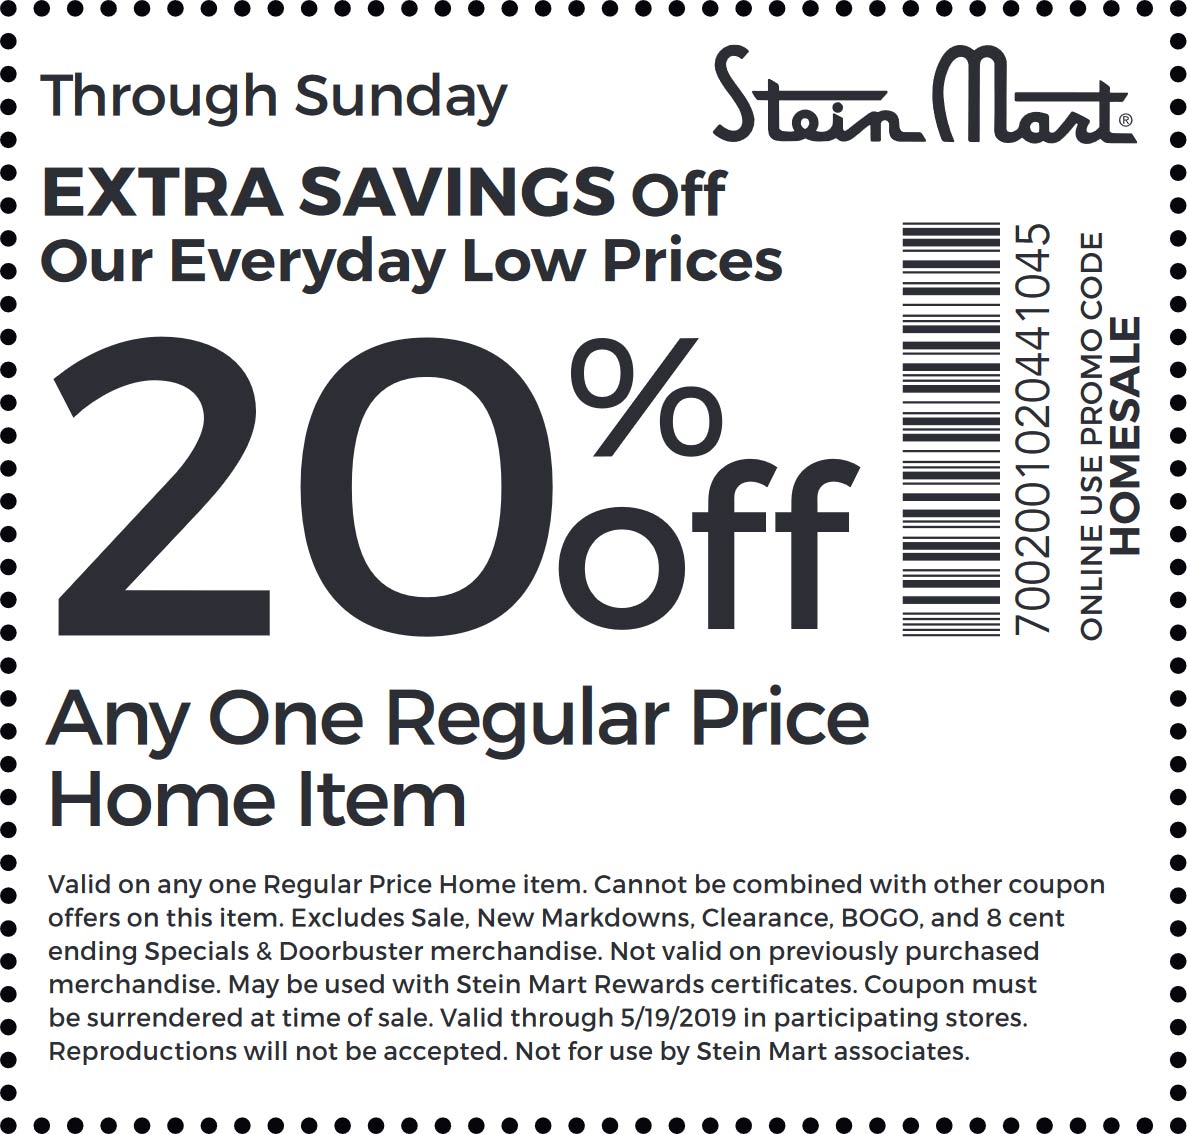 SteinMart.com Promo Coupon 20% off a single home item at Stein Mart, or online via promo code HOMESALE